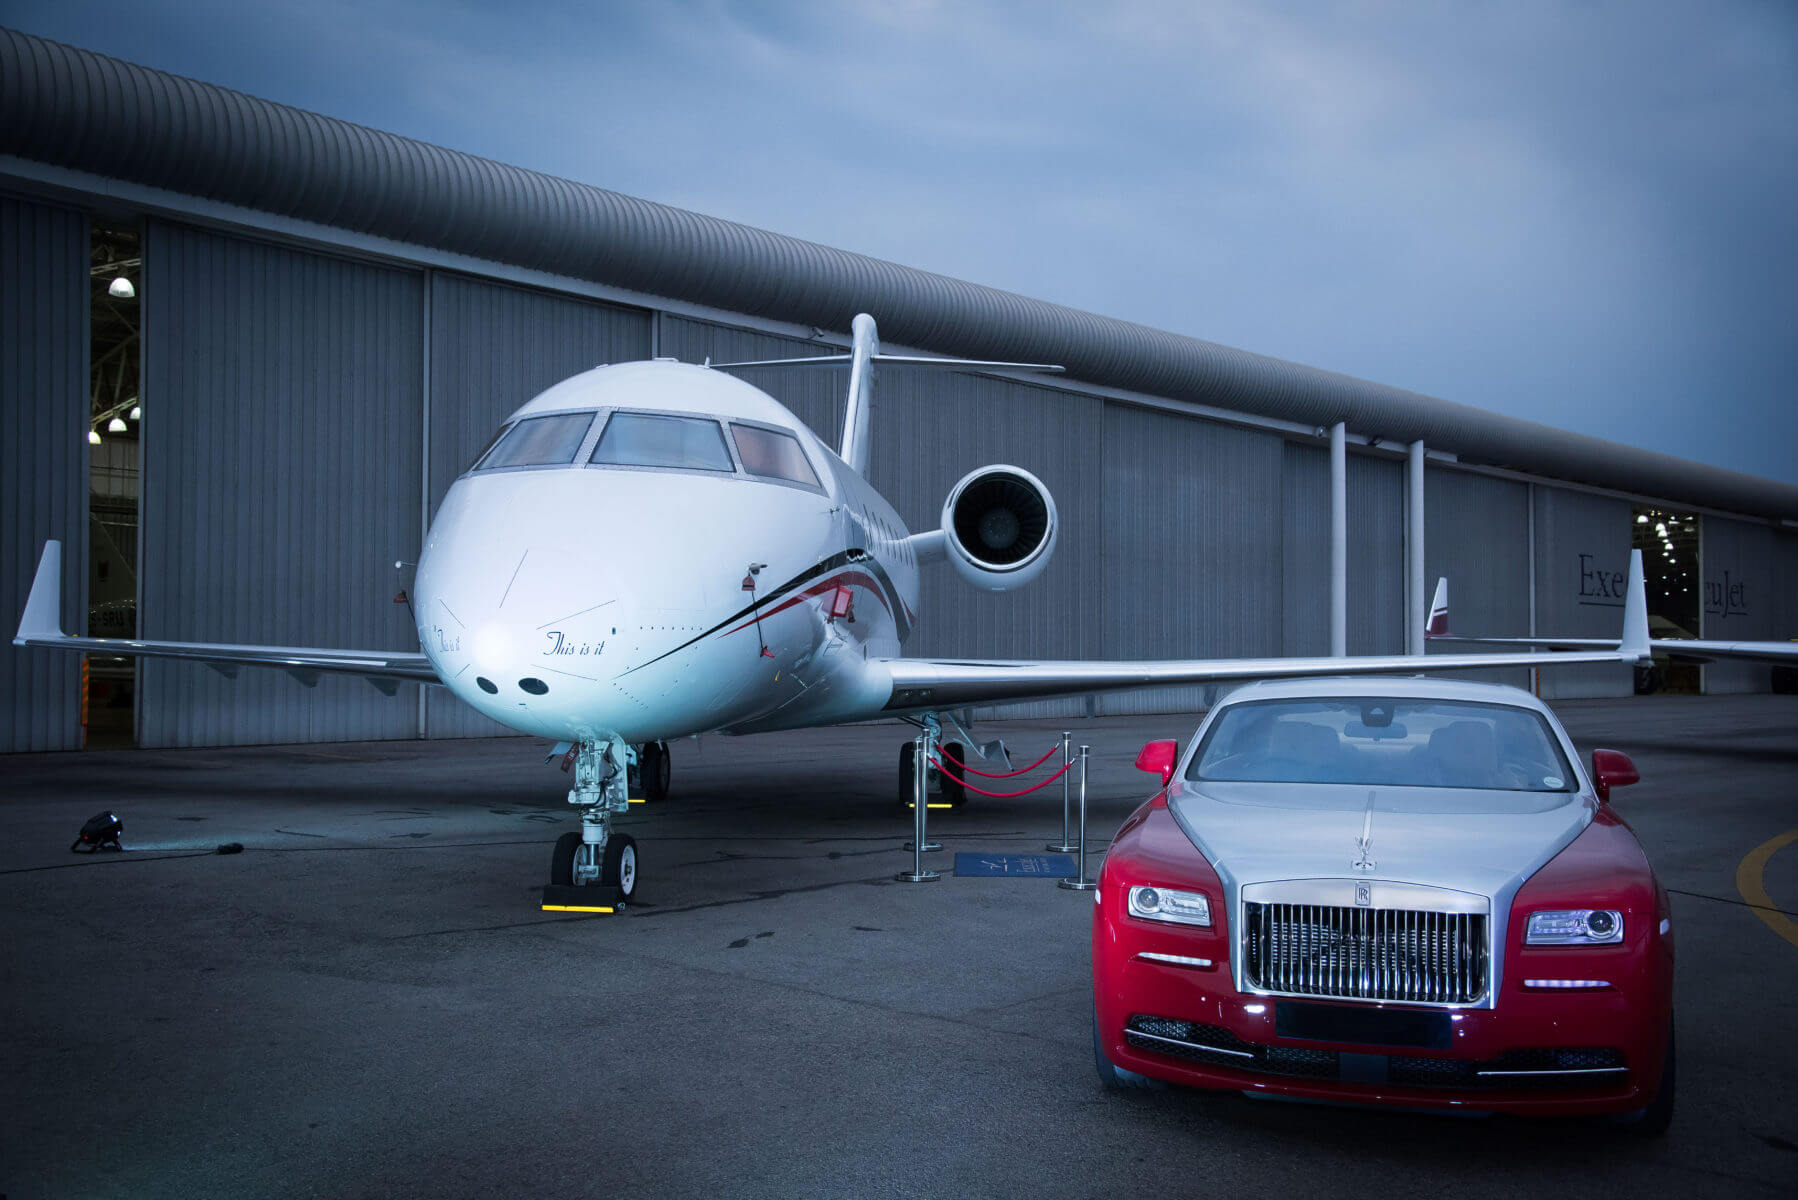 LUXURIA LIFESTYLE WELCOMES EXECUJET AS A NEW ADVERTISER